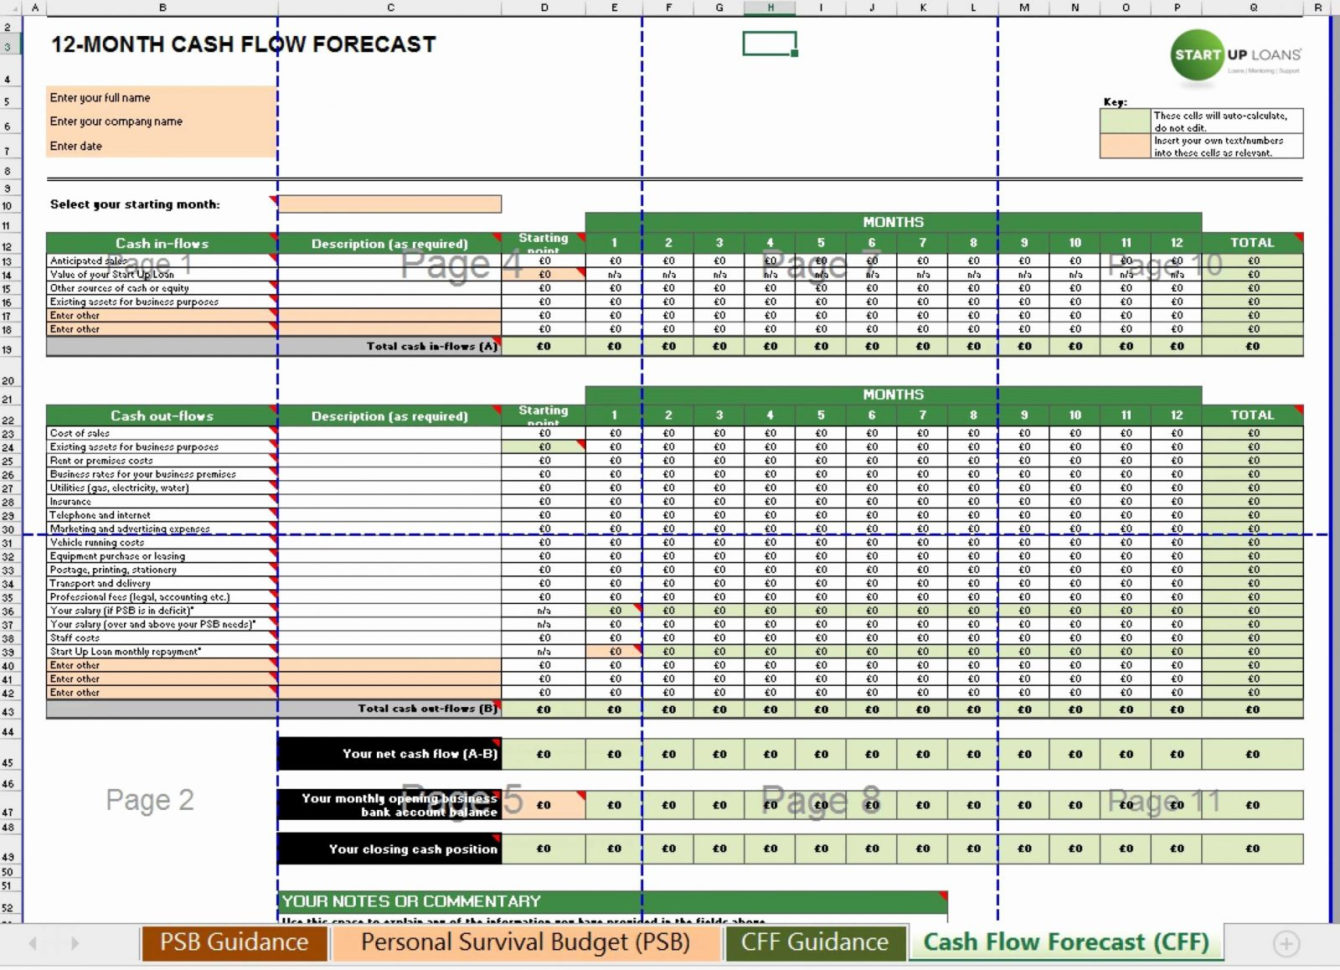 Weekly Cash Flow Forecast Spreadsheet Spreadsheet Downloa